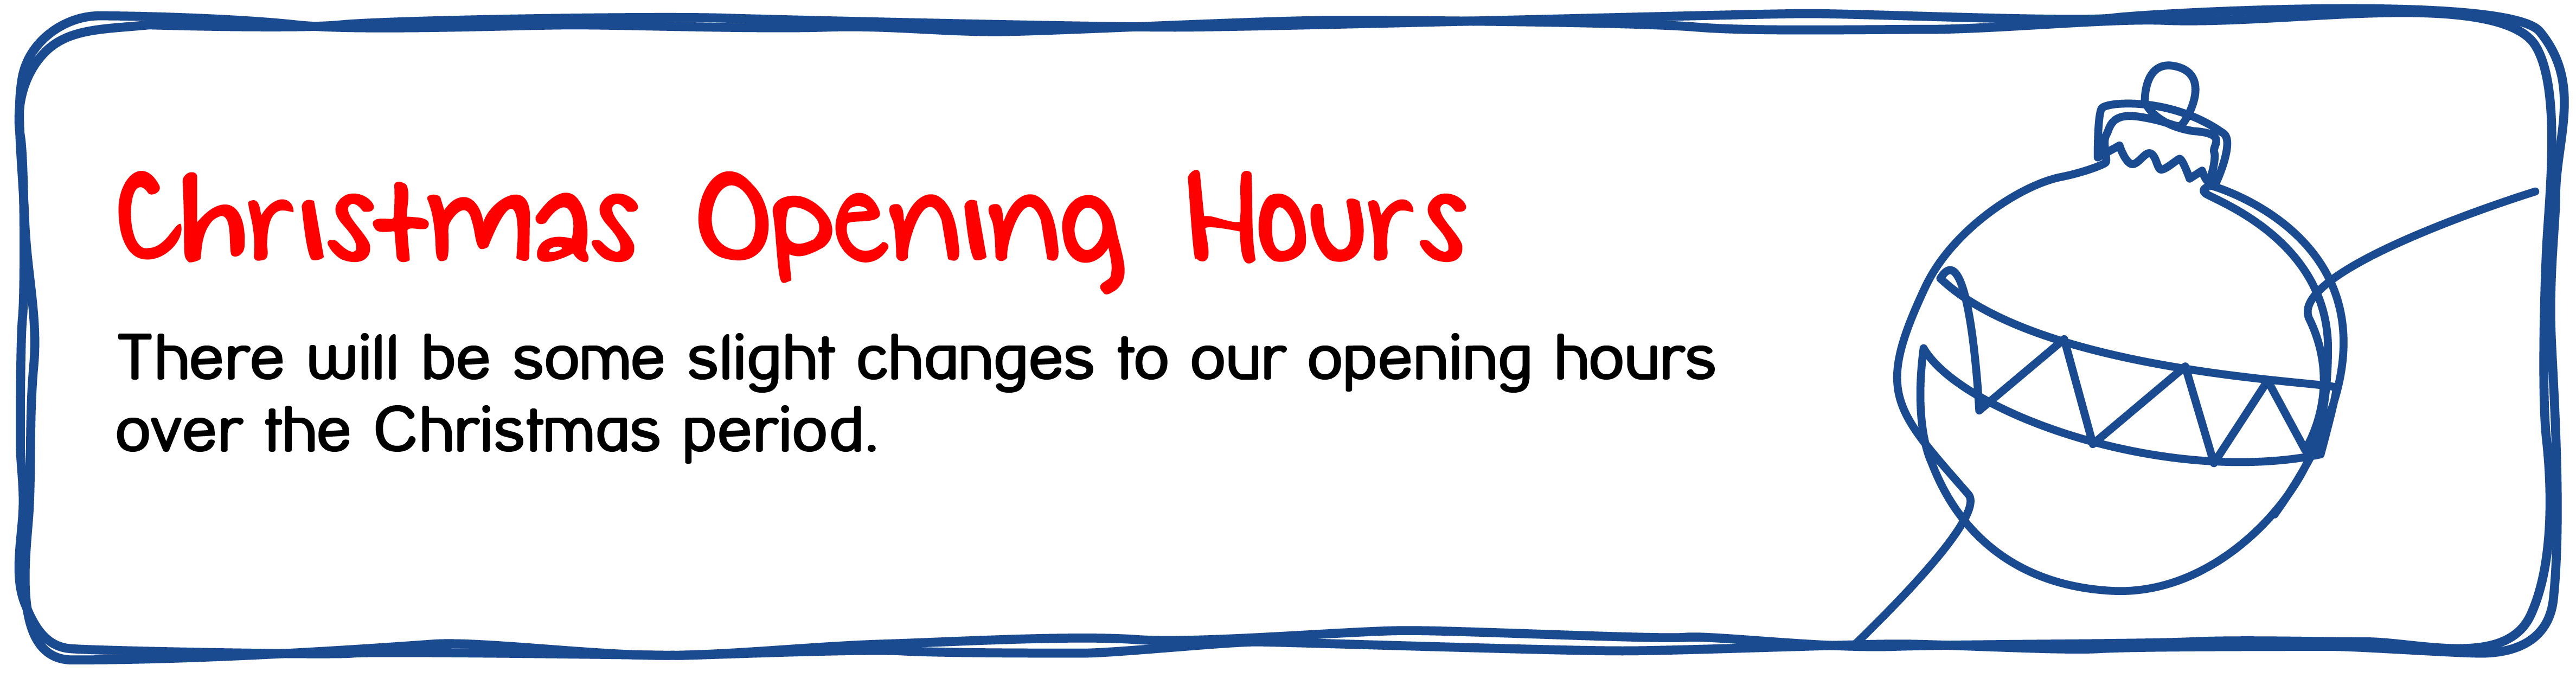 Christmas Opening Hours - There will be some slight changes to our opening hours over the Christmas period.